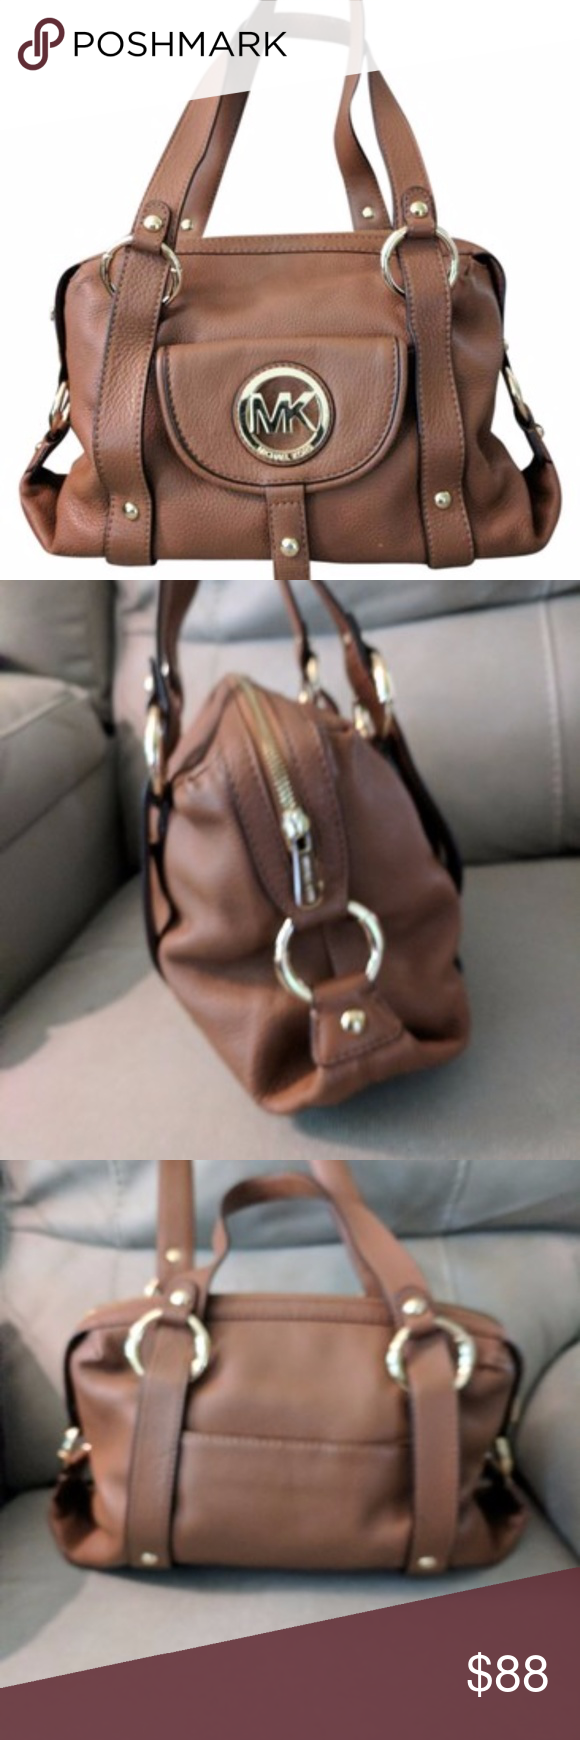 Michael Kors Fulton Pebbled Leather Satchel  Bag This is a great, brown pebbled leather satchel/hobo bag (I believe it's a Fulton Satchel in Luggage Brown). It can comfortably be worn on the shoulder. It's roomy without being too large. Great every day bag. The leather is in great condition with very little wear. The hardware is in good condition, though the rectangular piece at the bottom of the front flat has some wear and scratches, as pictured. However, this piece tends to sit underneath…